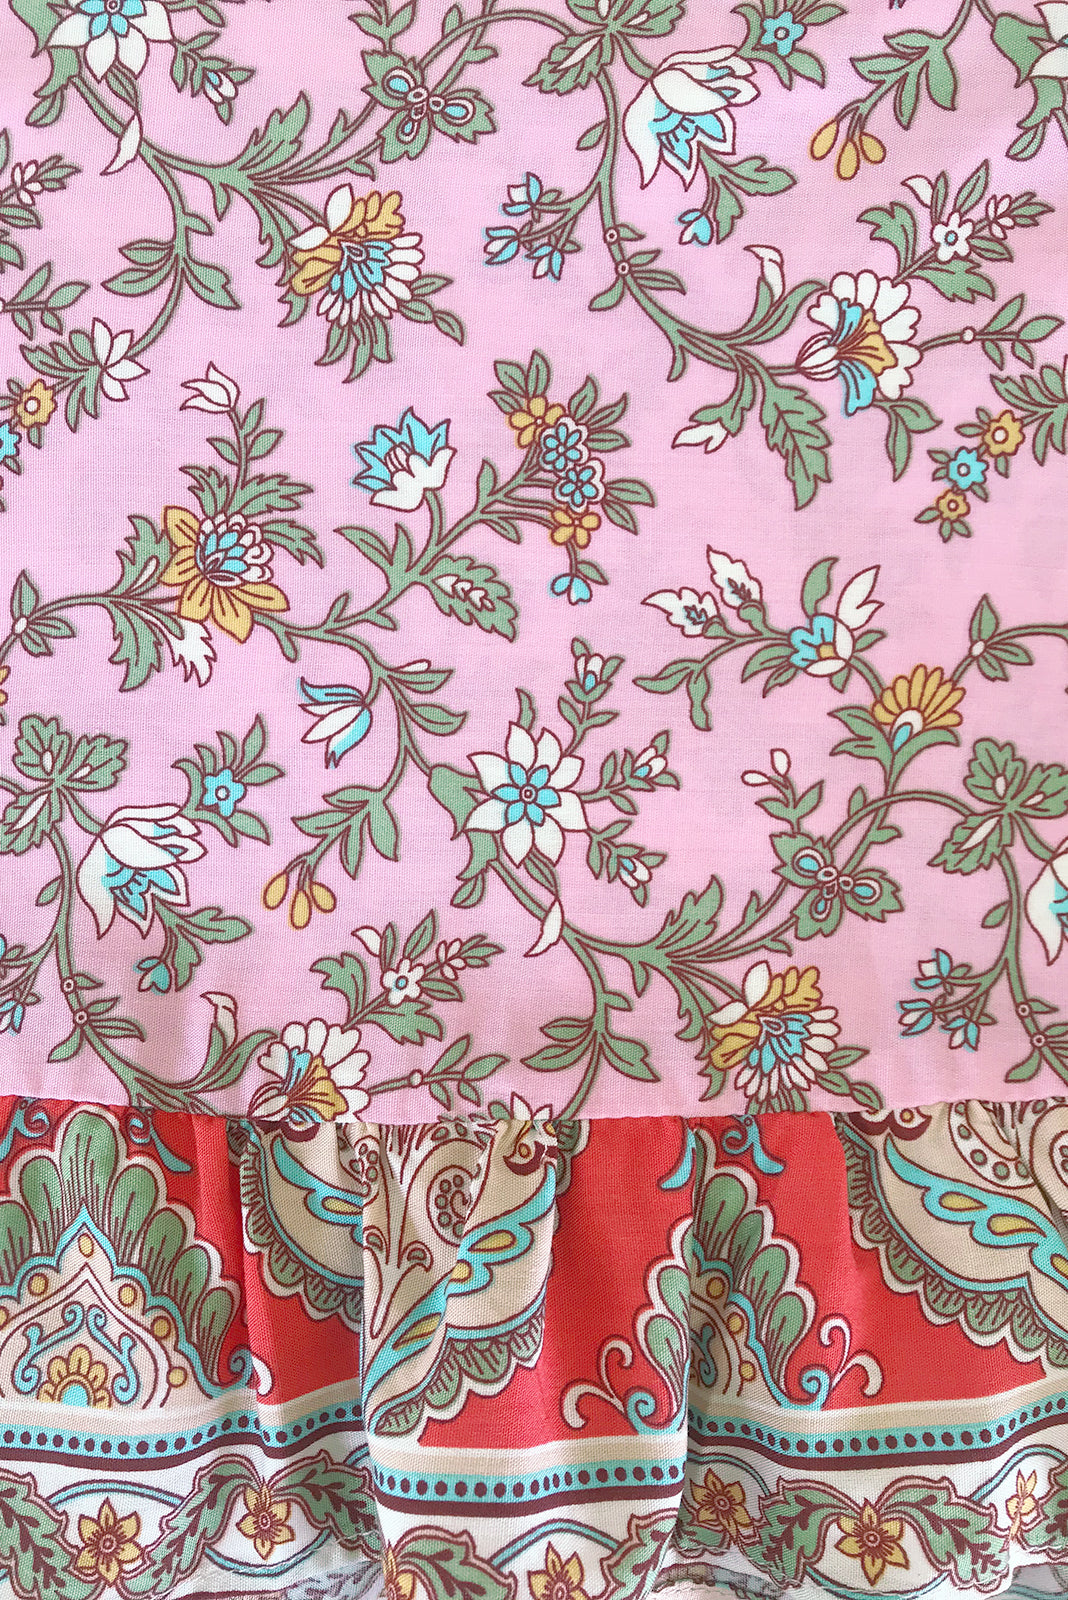 Fabric Swatch of Sea Coast Mini Skirt Strawberry Bohemian featuring 100% viscose in pale pink base with bohemian print and watermelon red border feature.